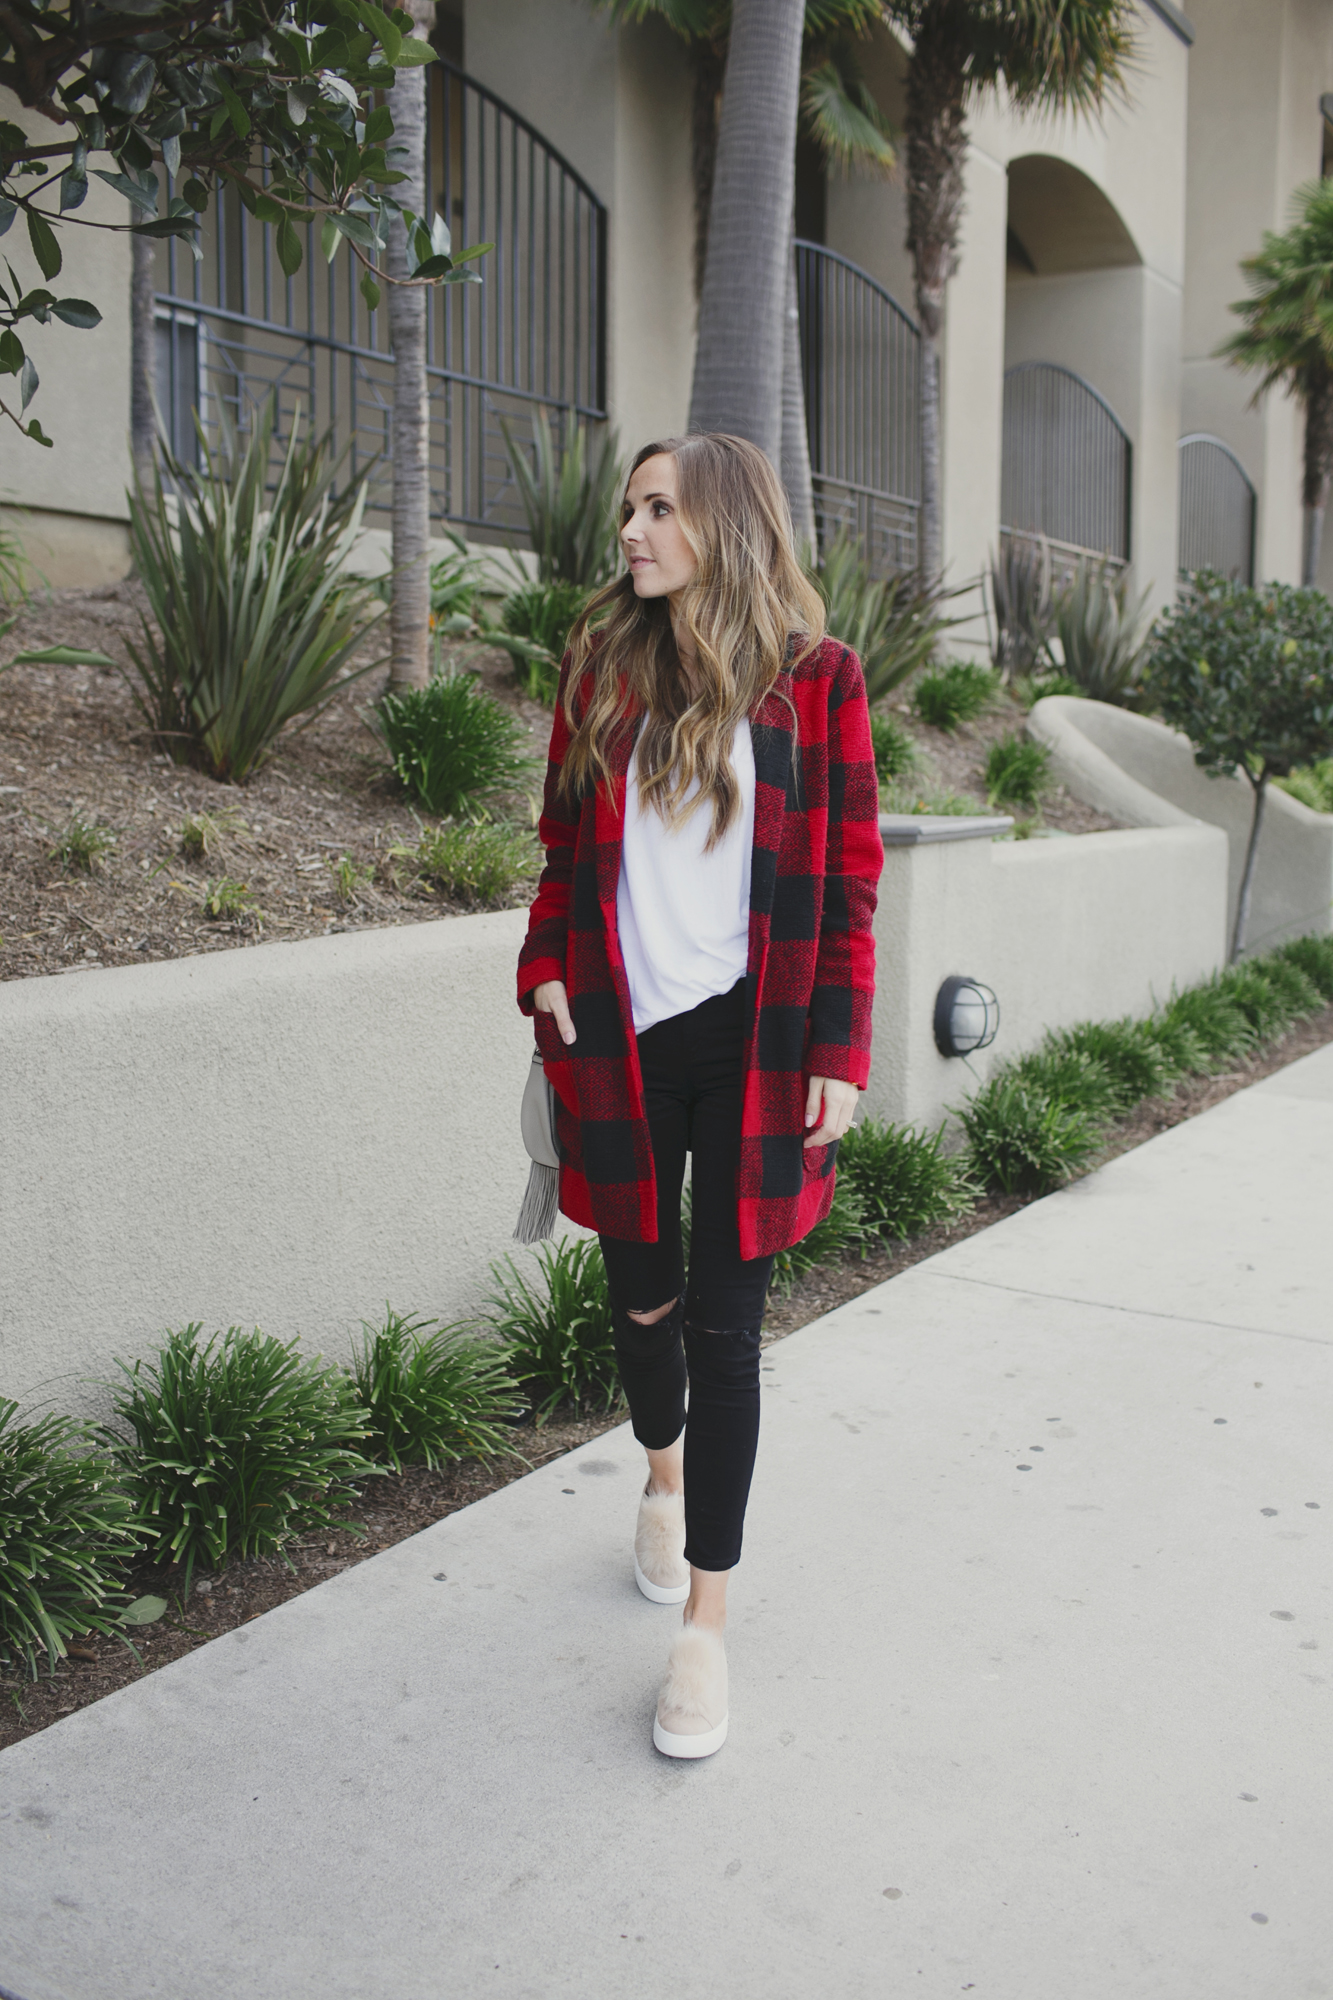 Merrick's Art Buffalo Plaid Coat